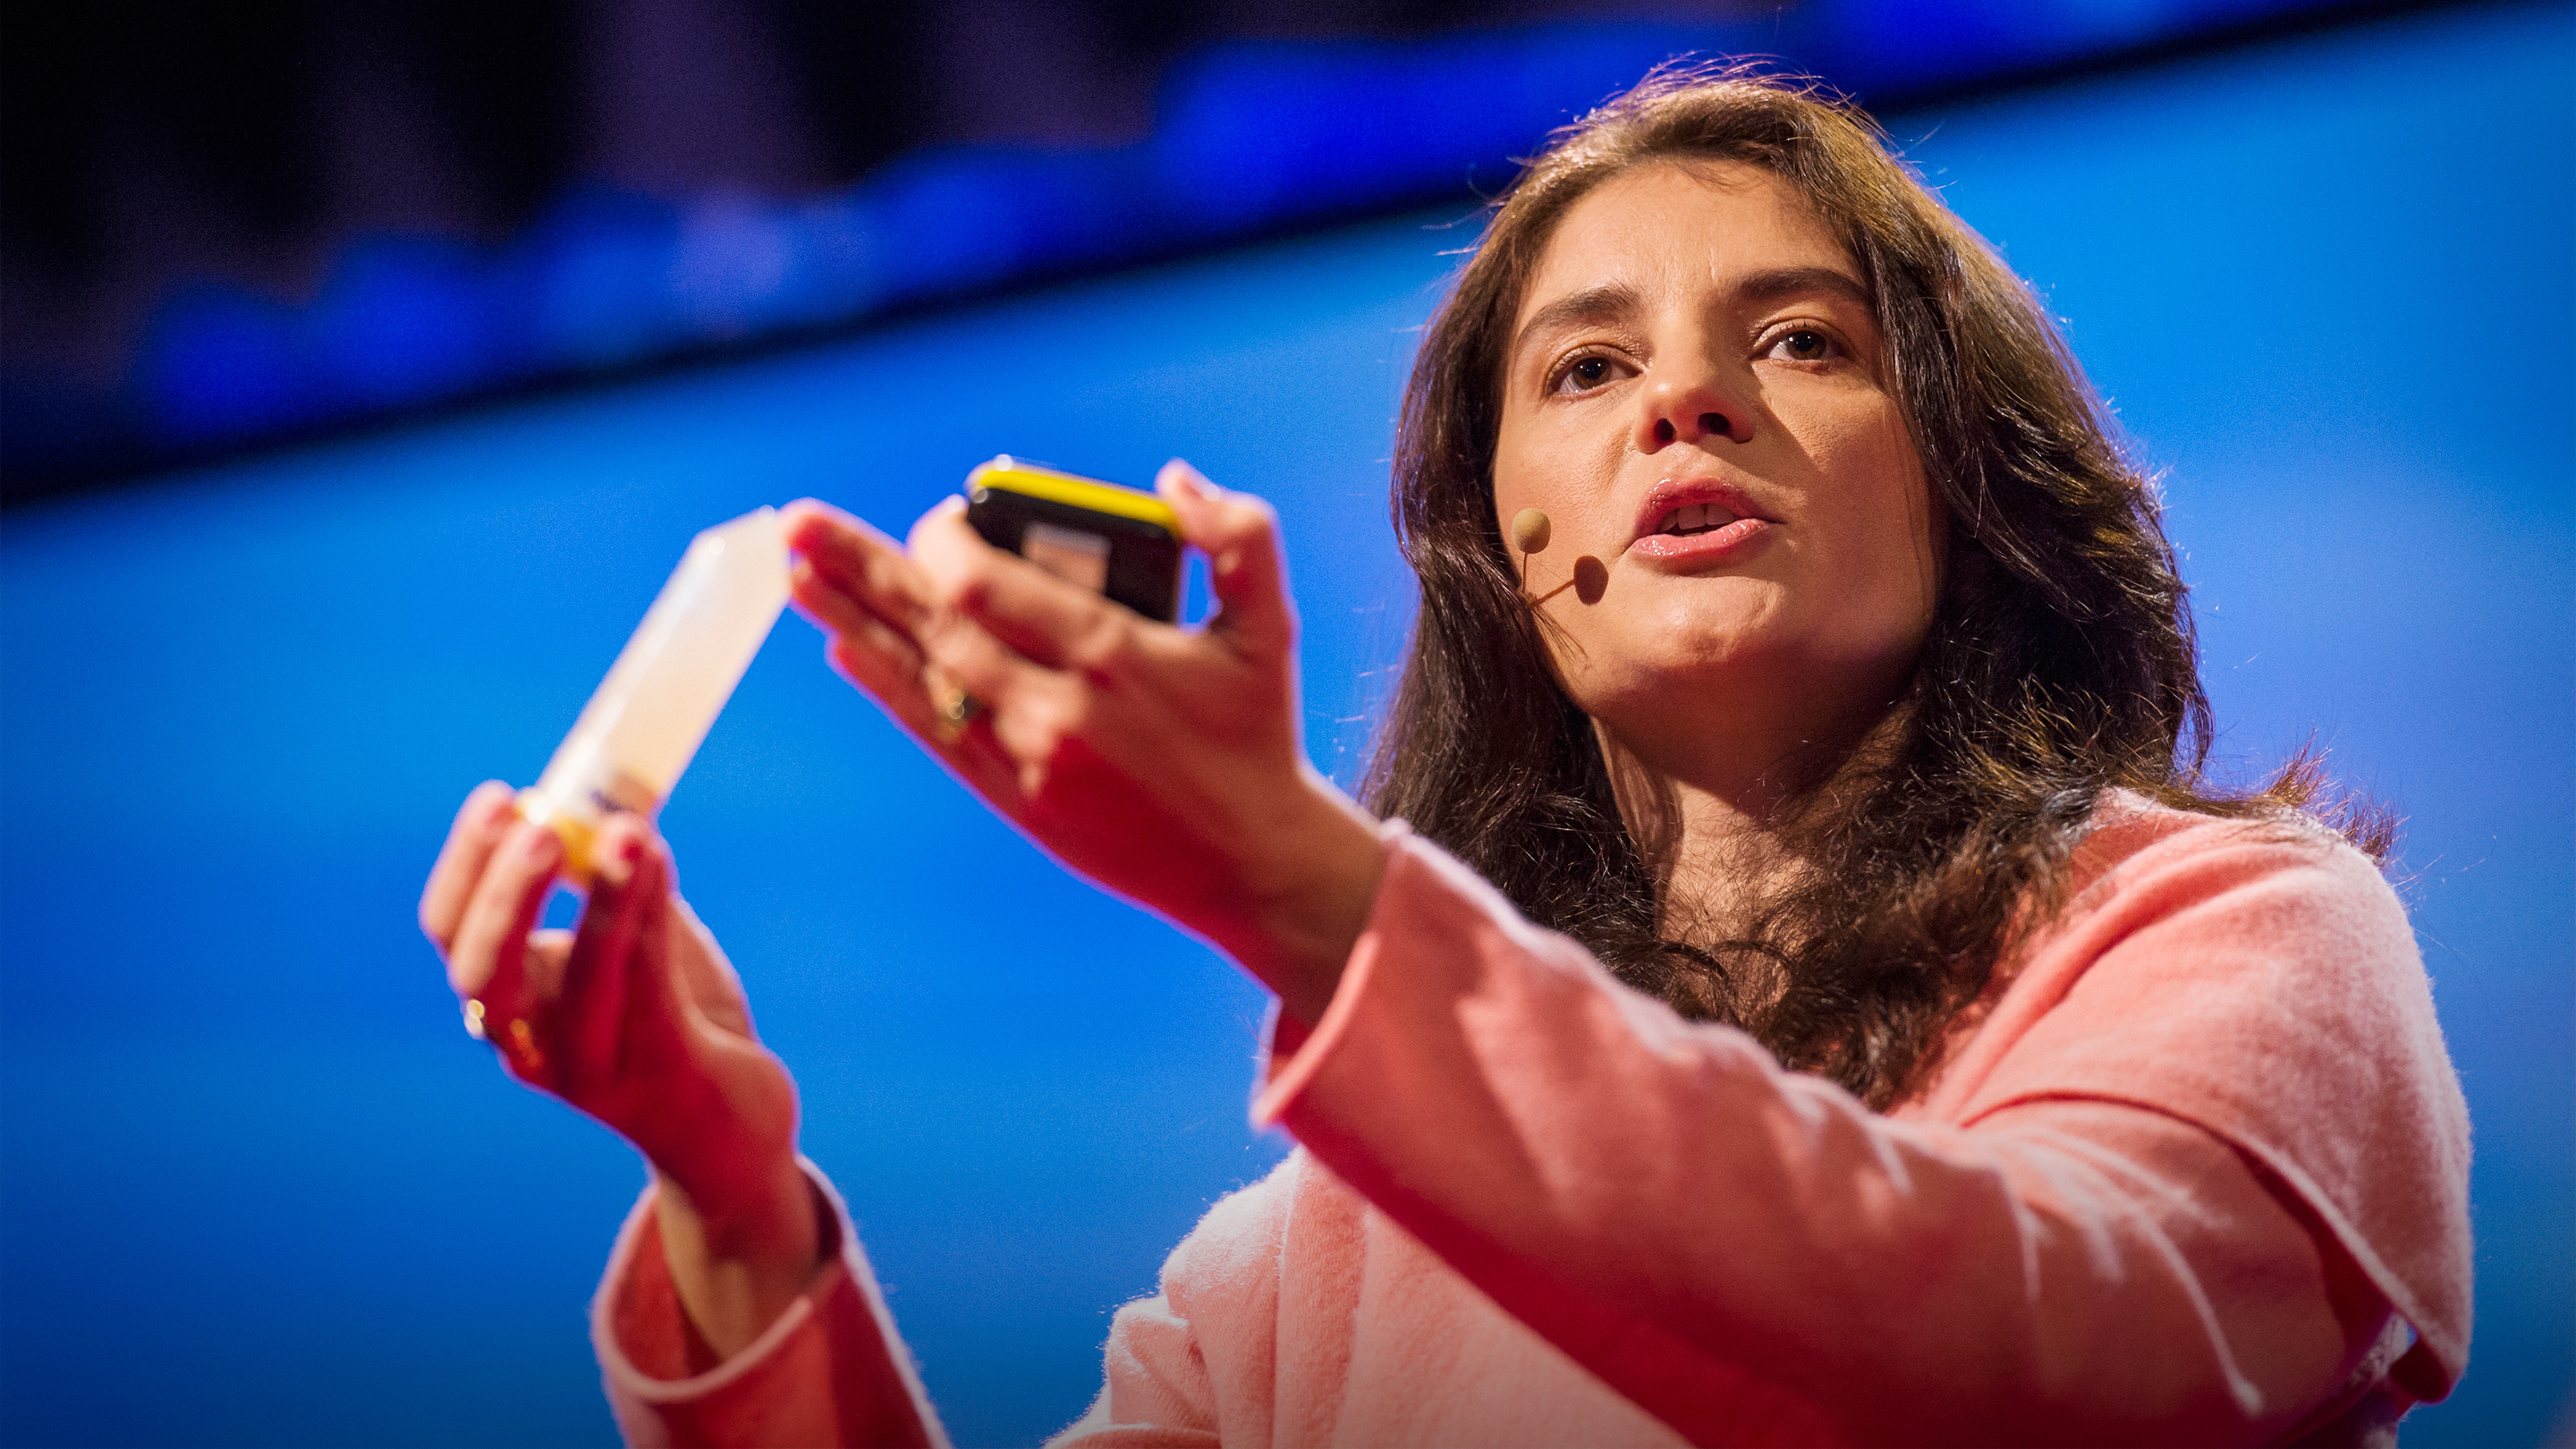 Sandrine Thuret You Can Grow New Brain Cells HereS How  Ted Talk